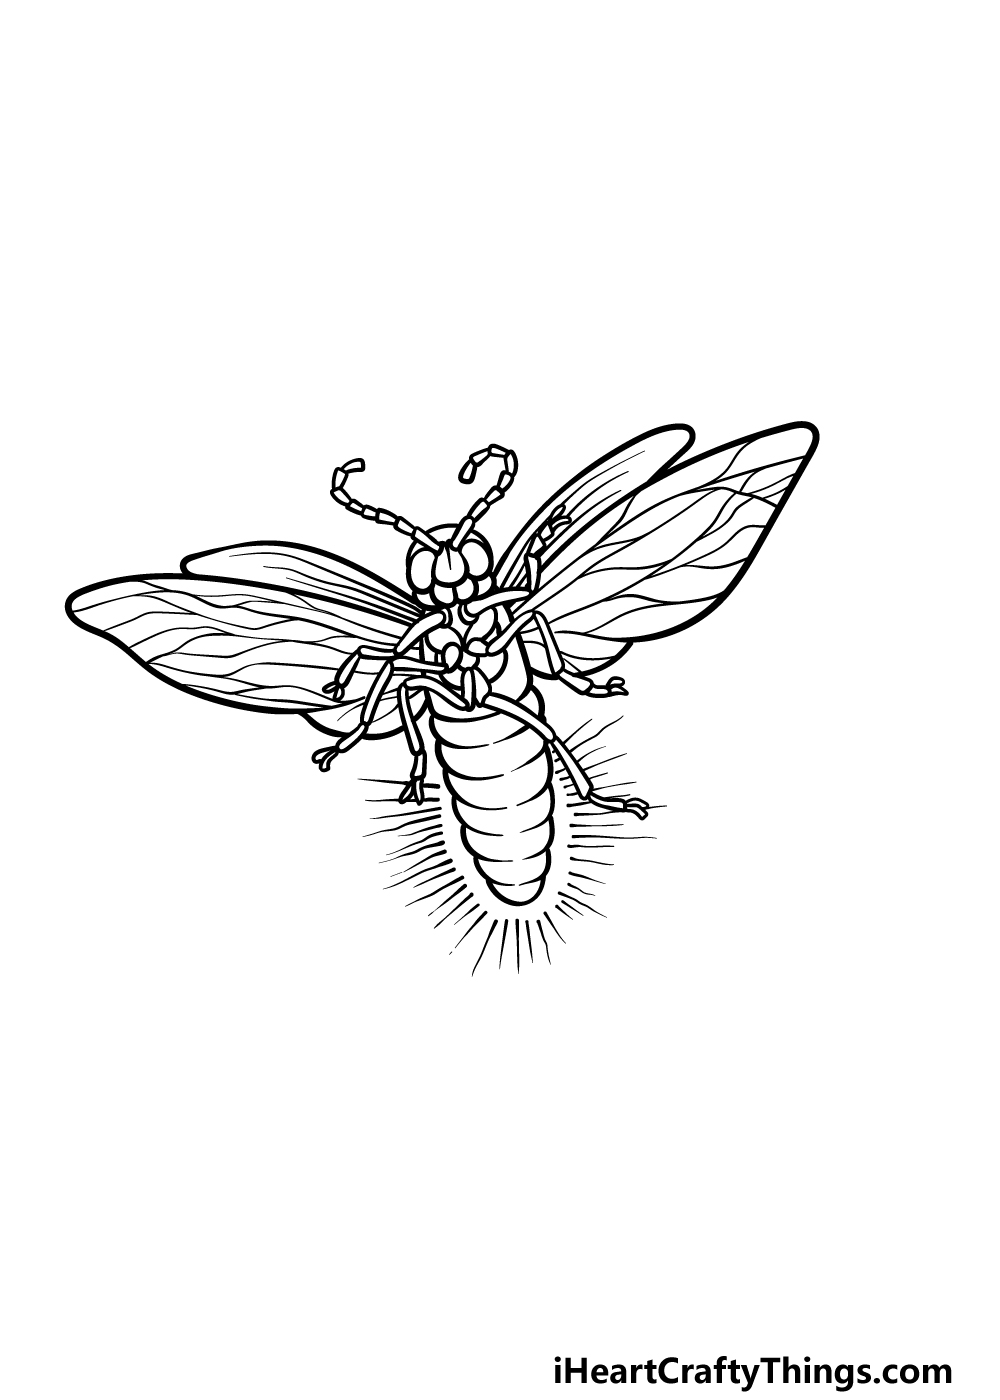 drawing a firefly step 5